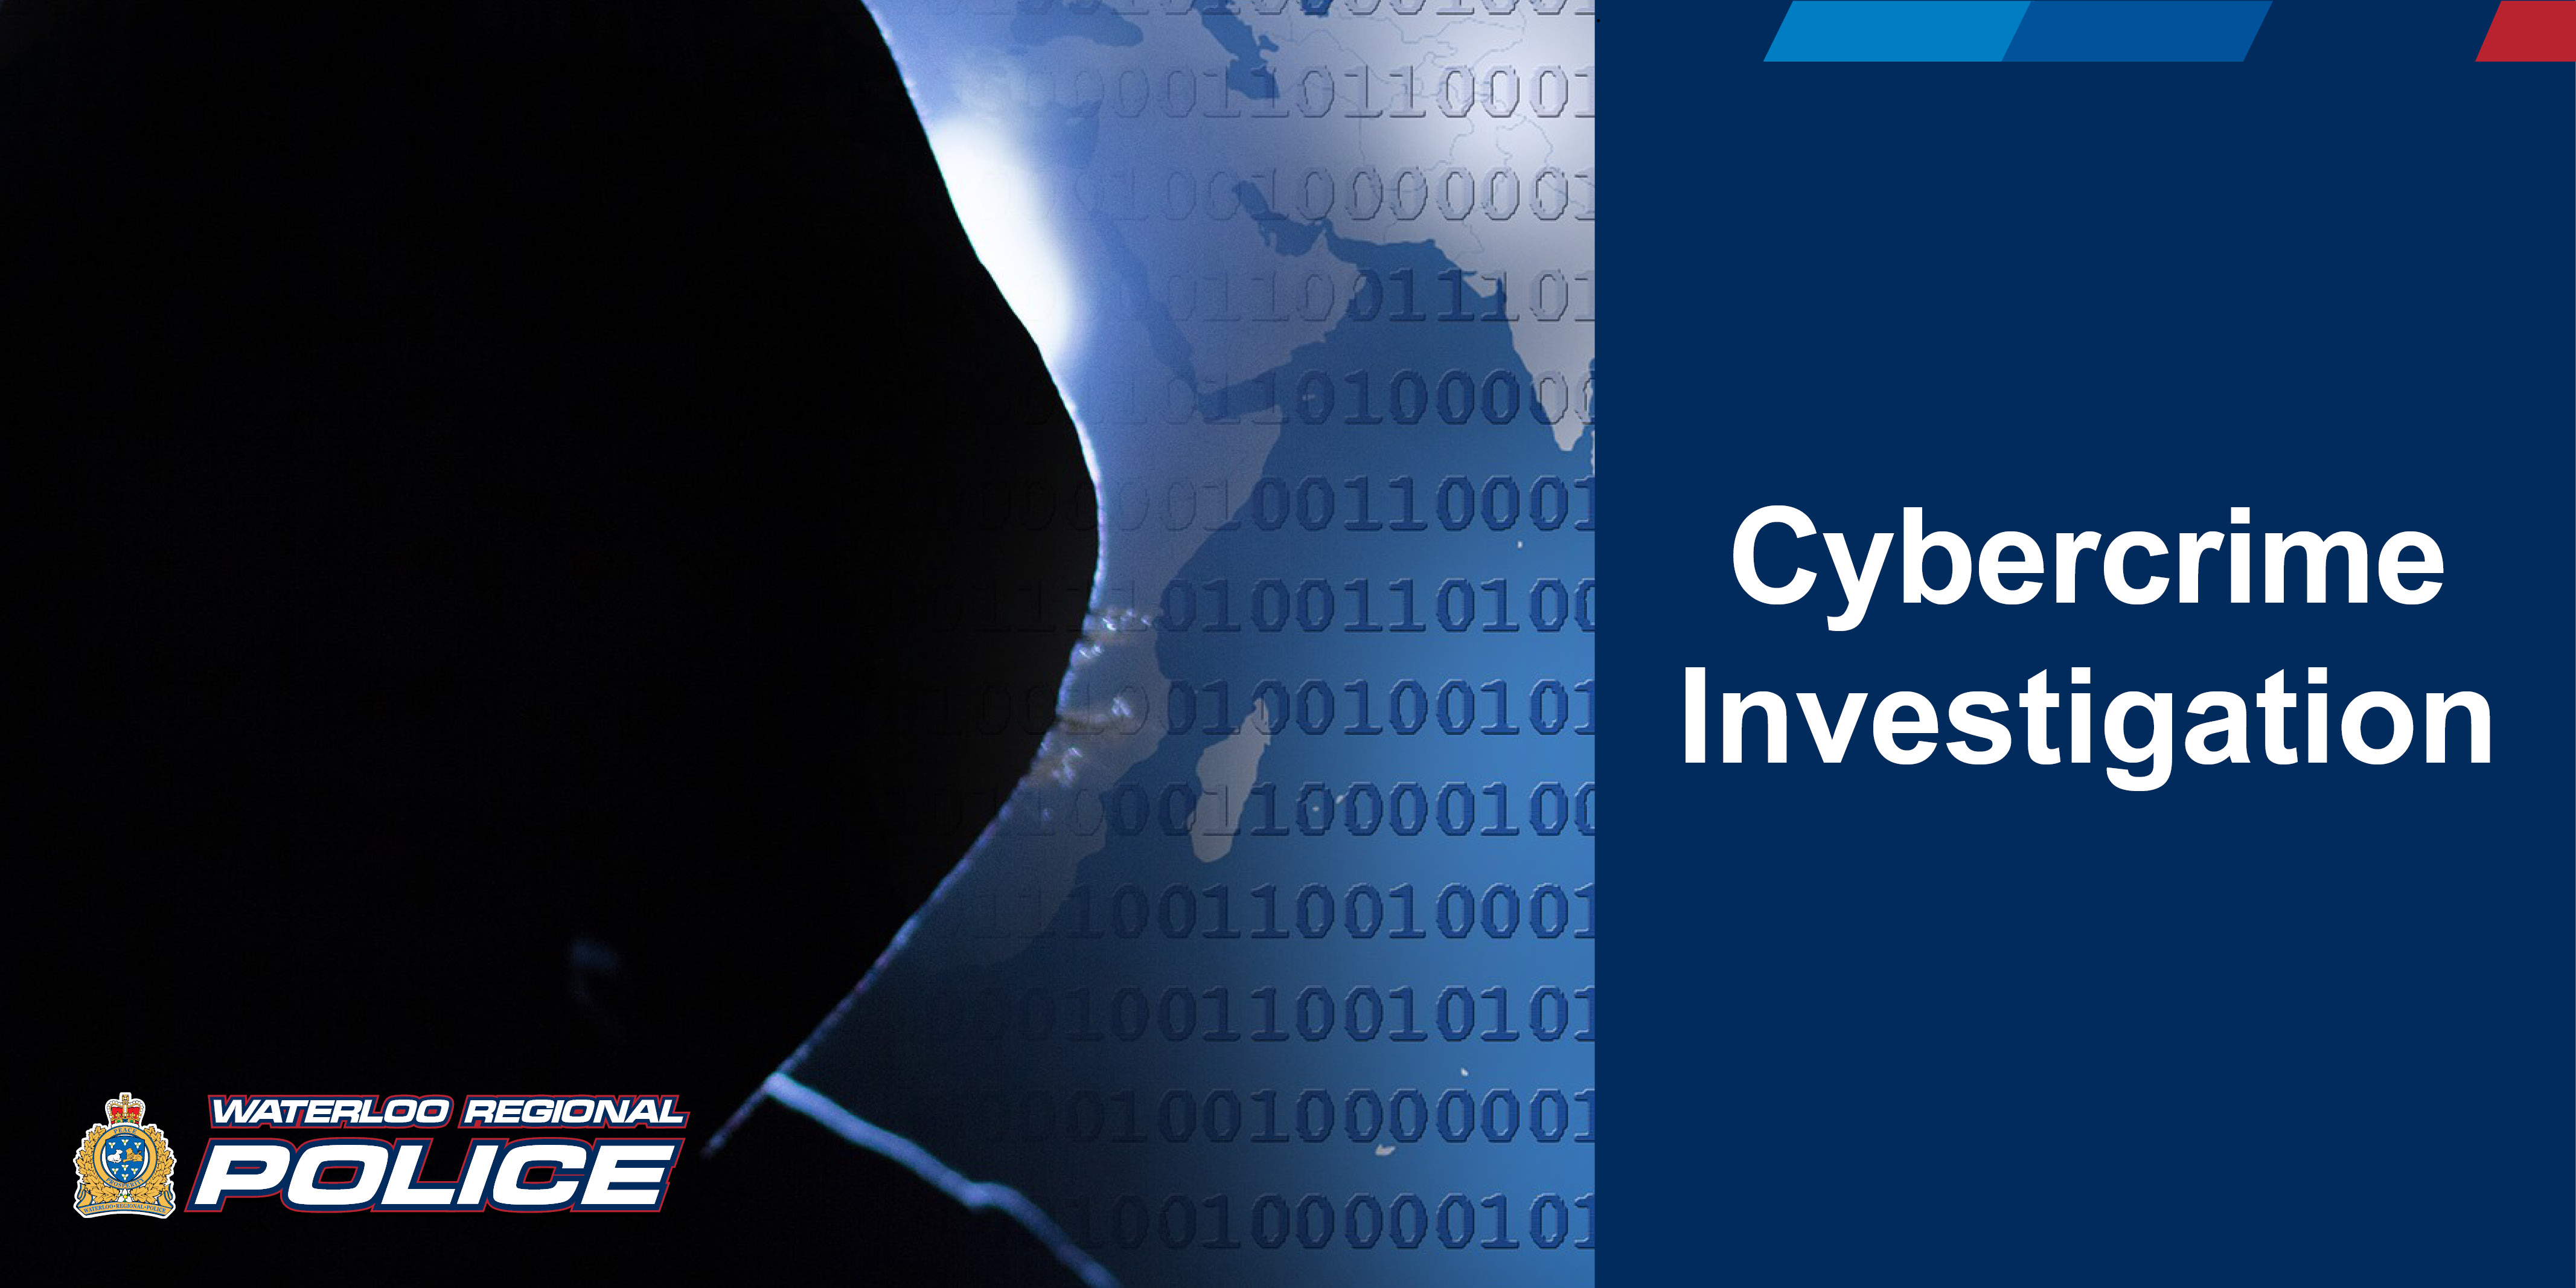 Cyber Crime Investigation Graphic